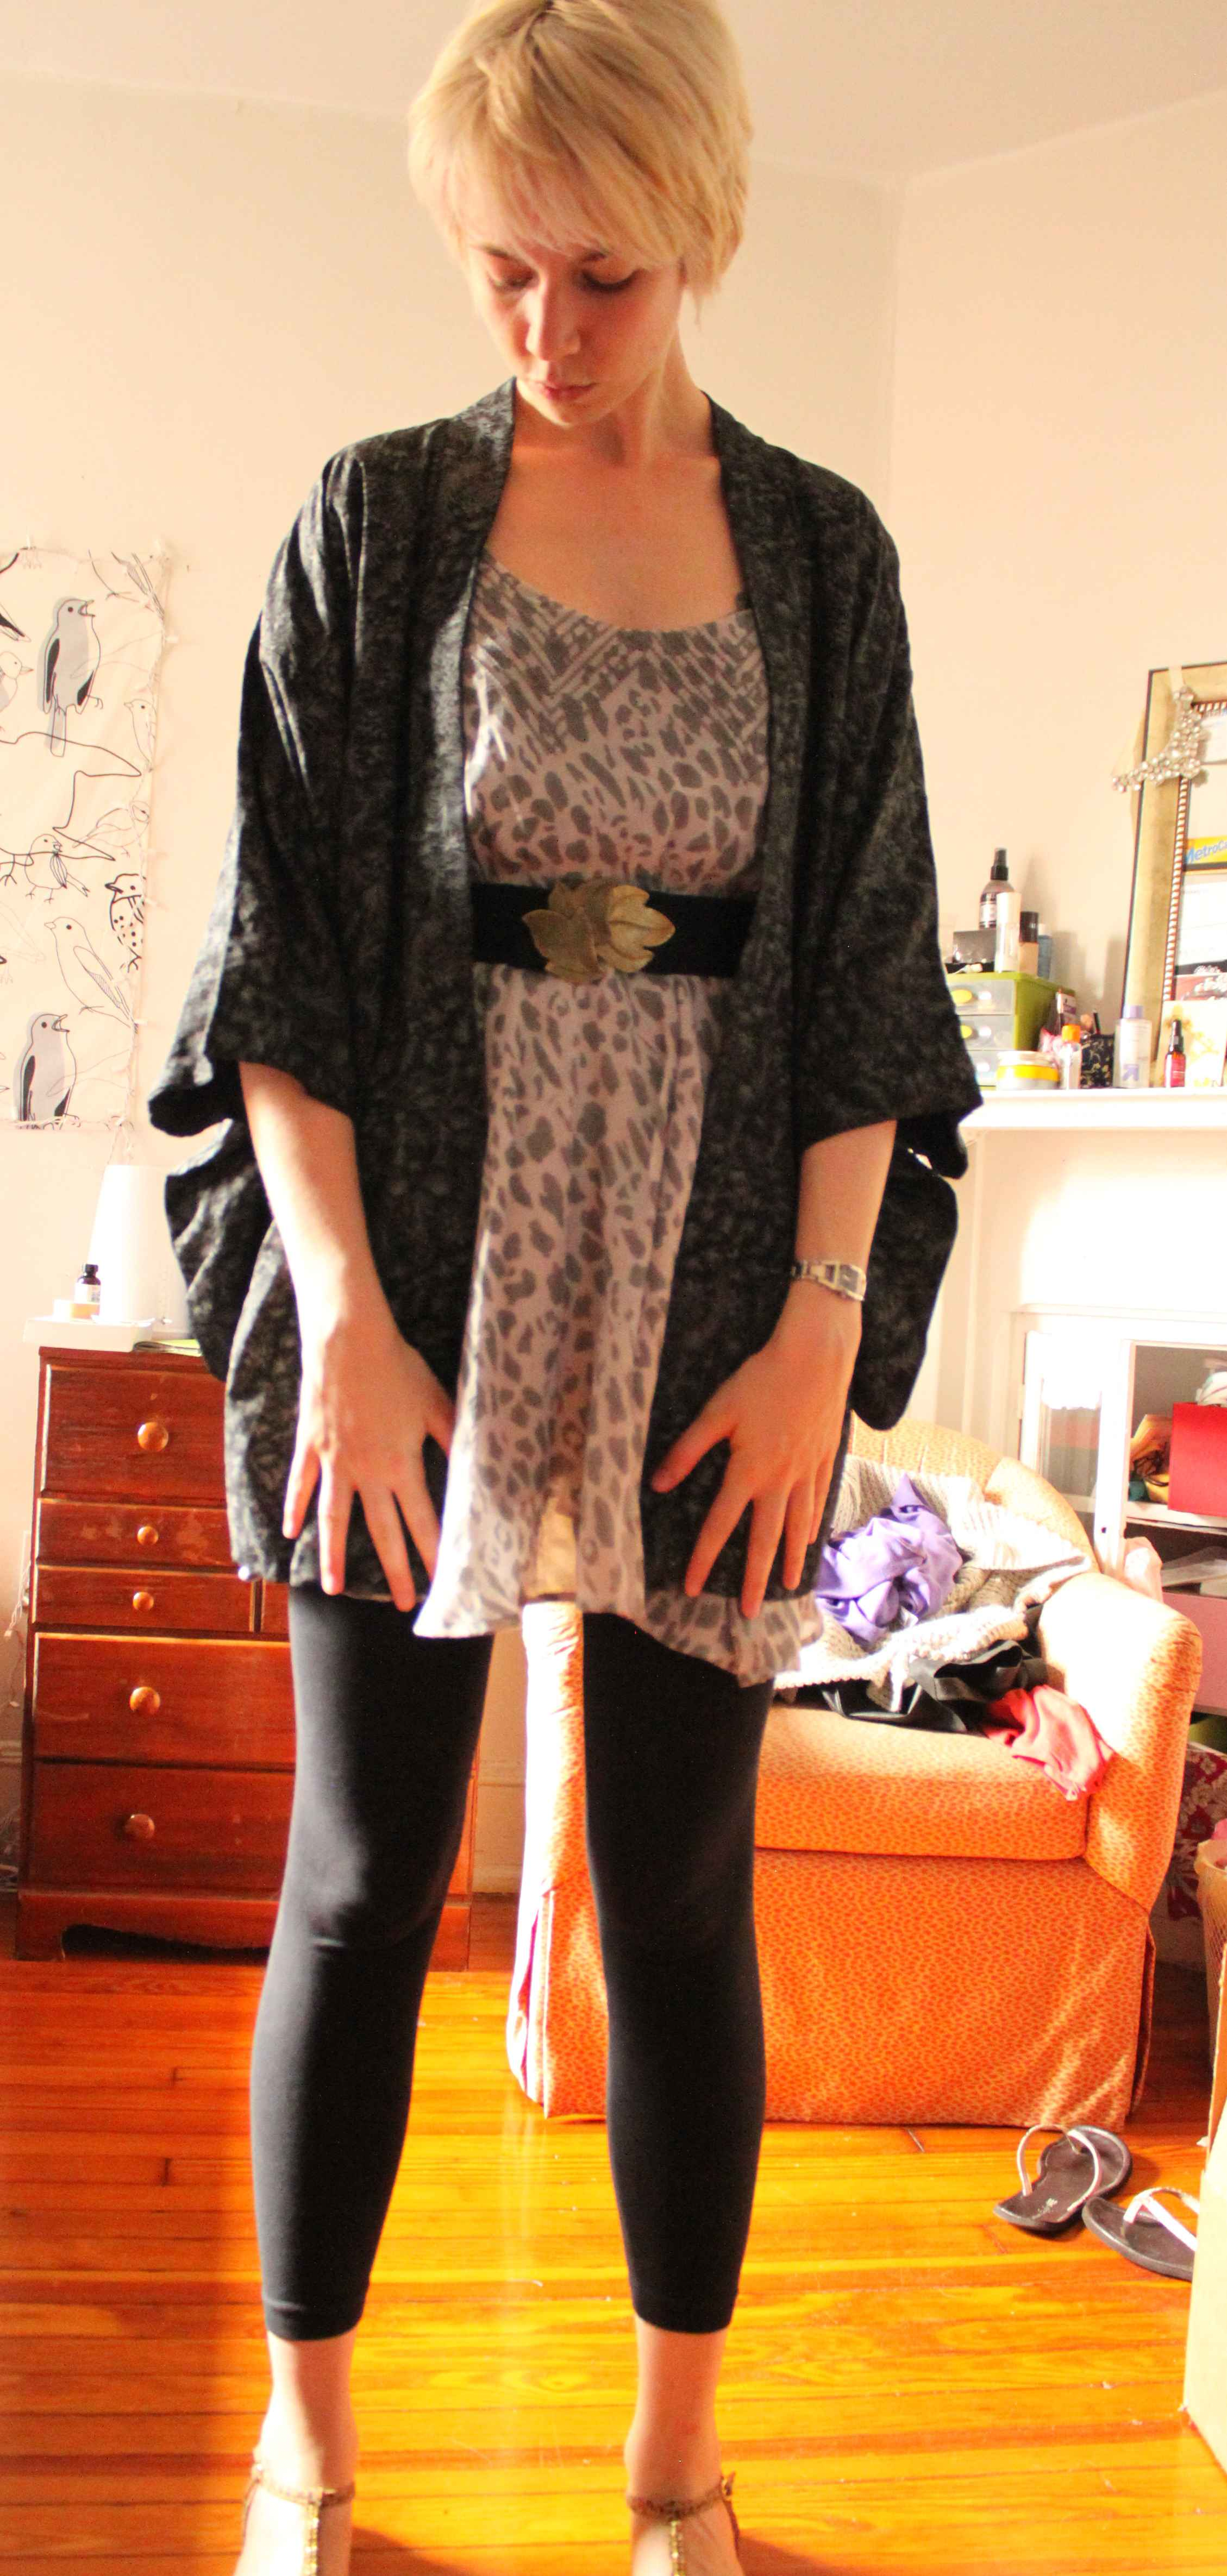 Thelongleggedstyleblogger: Another Vintage Piece? Are You Turning Into A Vintage